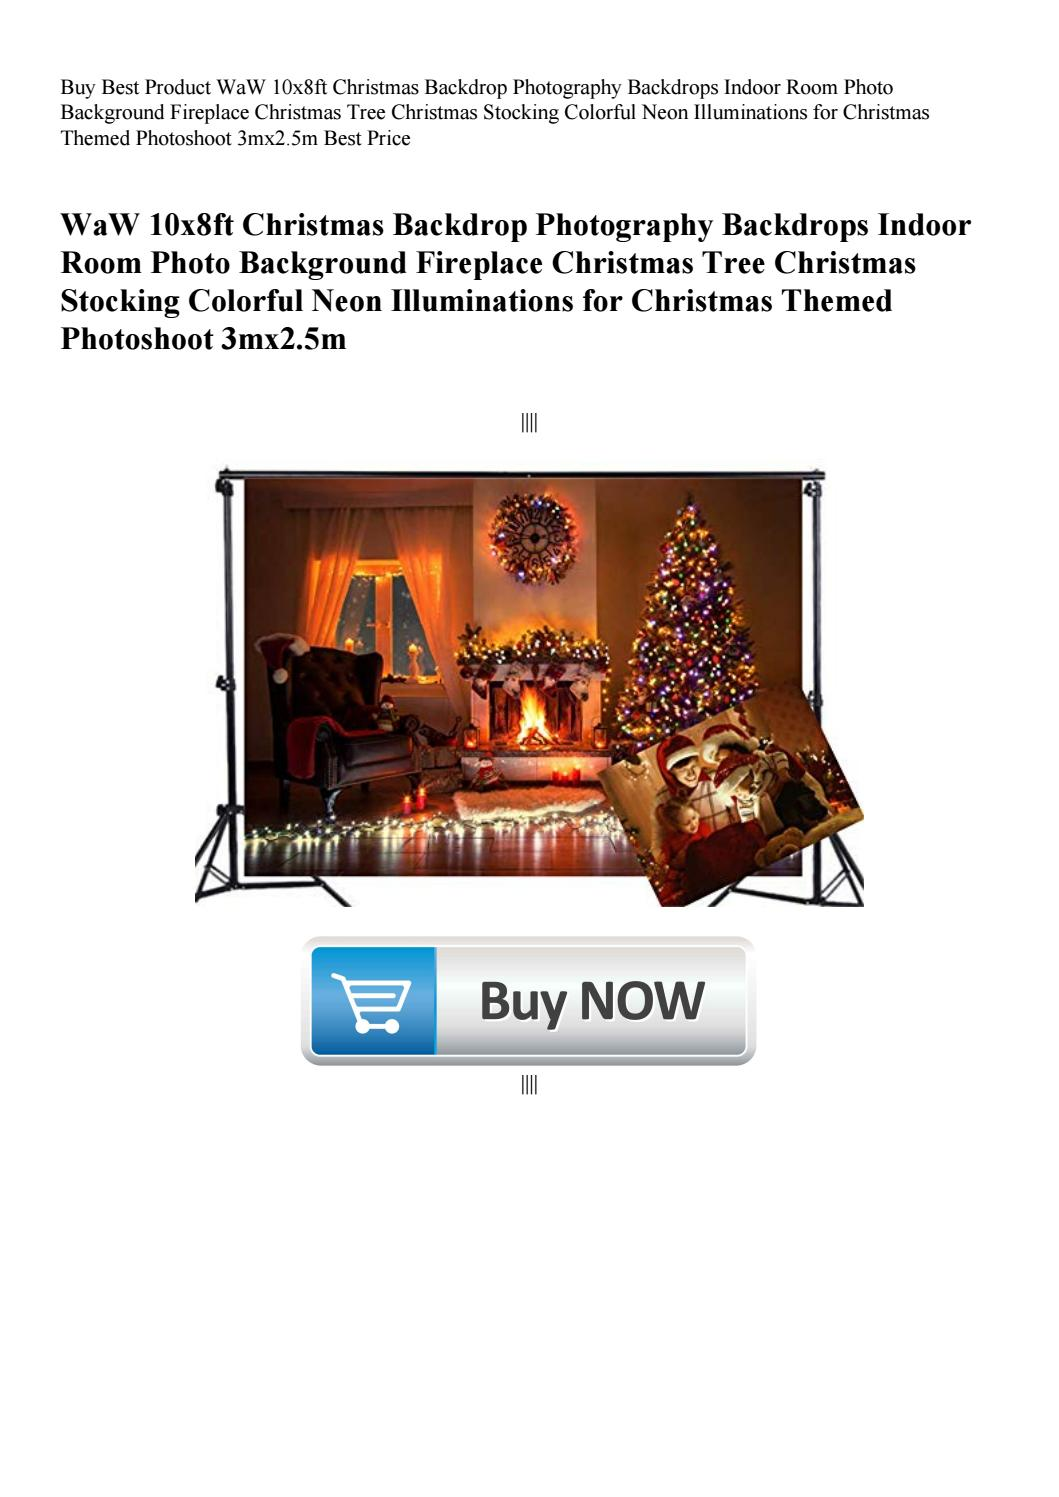 Buy Best Product WaW 10x8ft Christmas Backdrop Photography